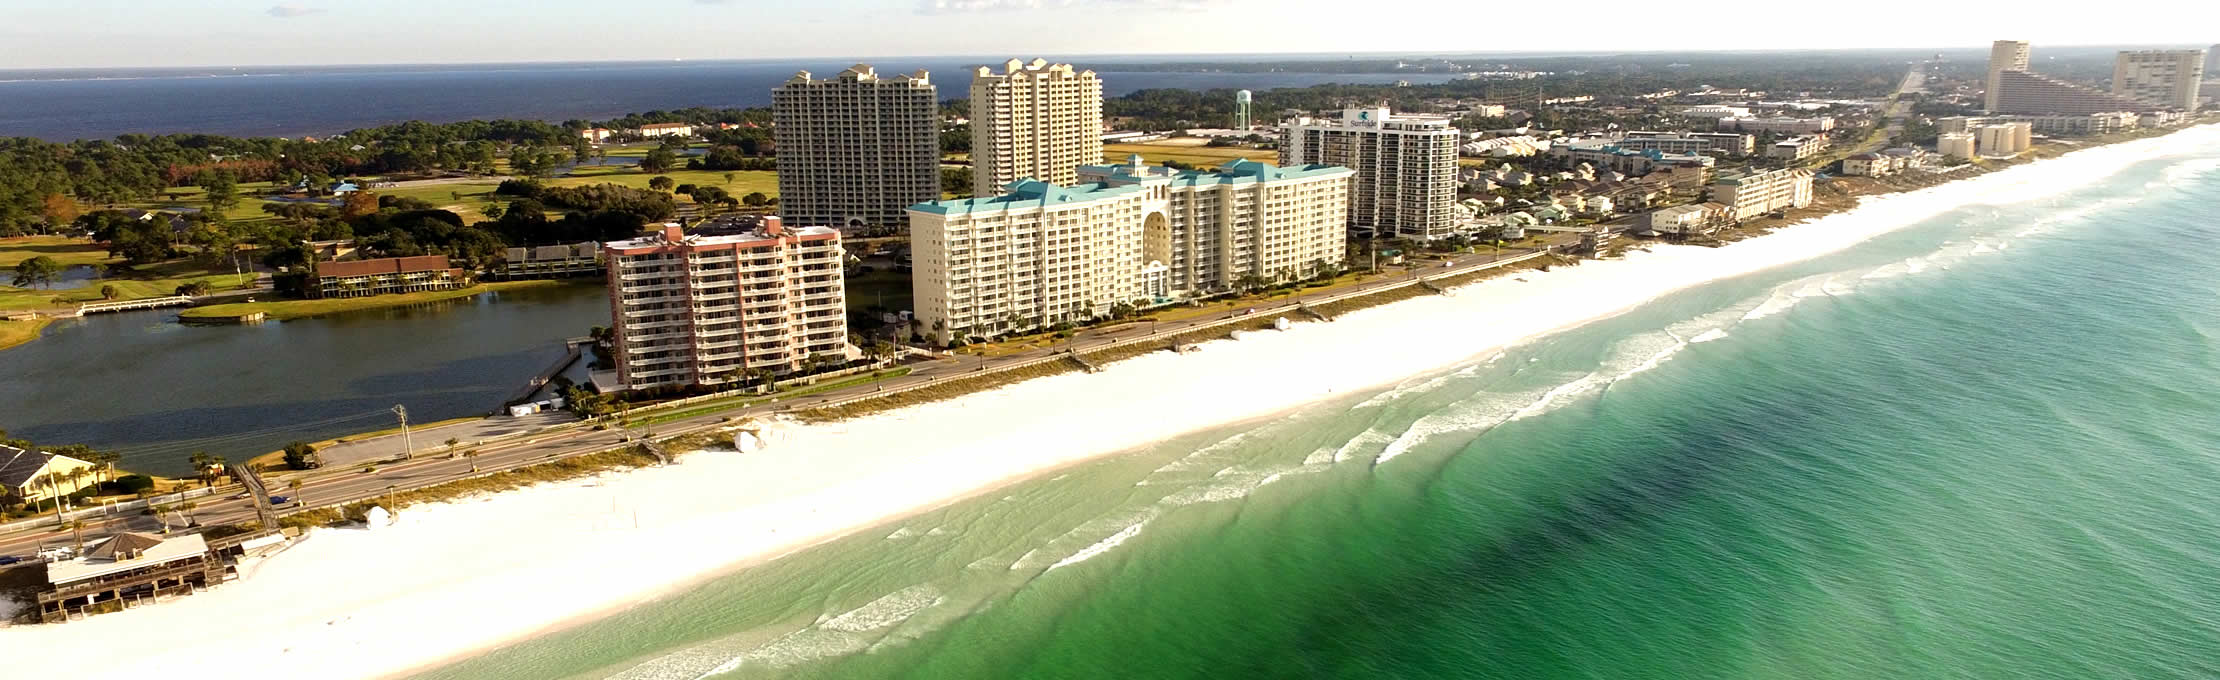 Destin Vacation Als Condo Florida Resorts